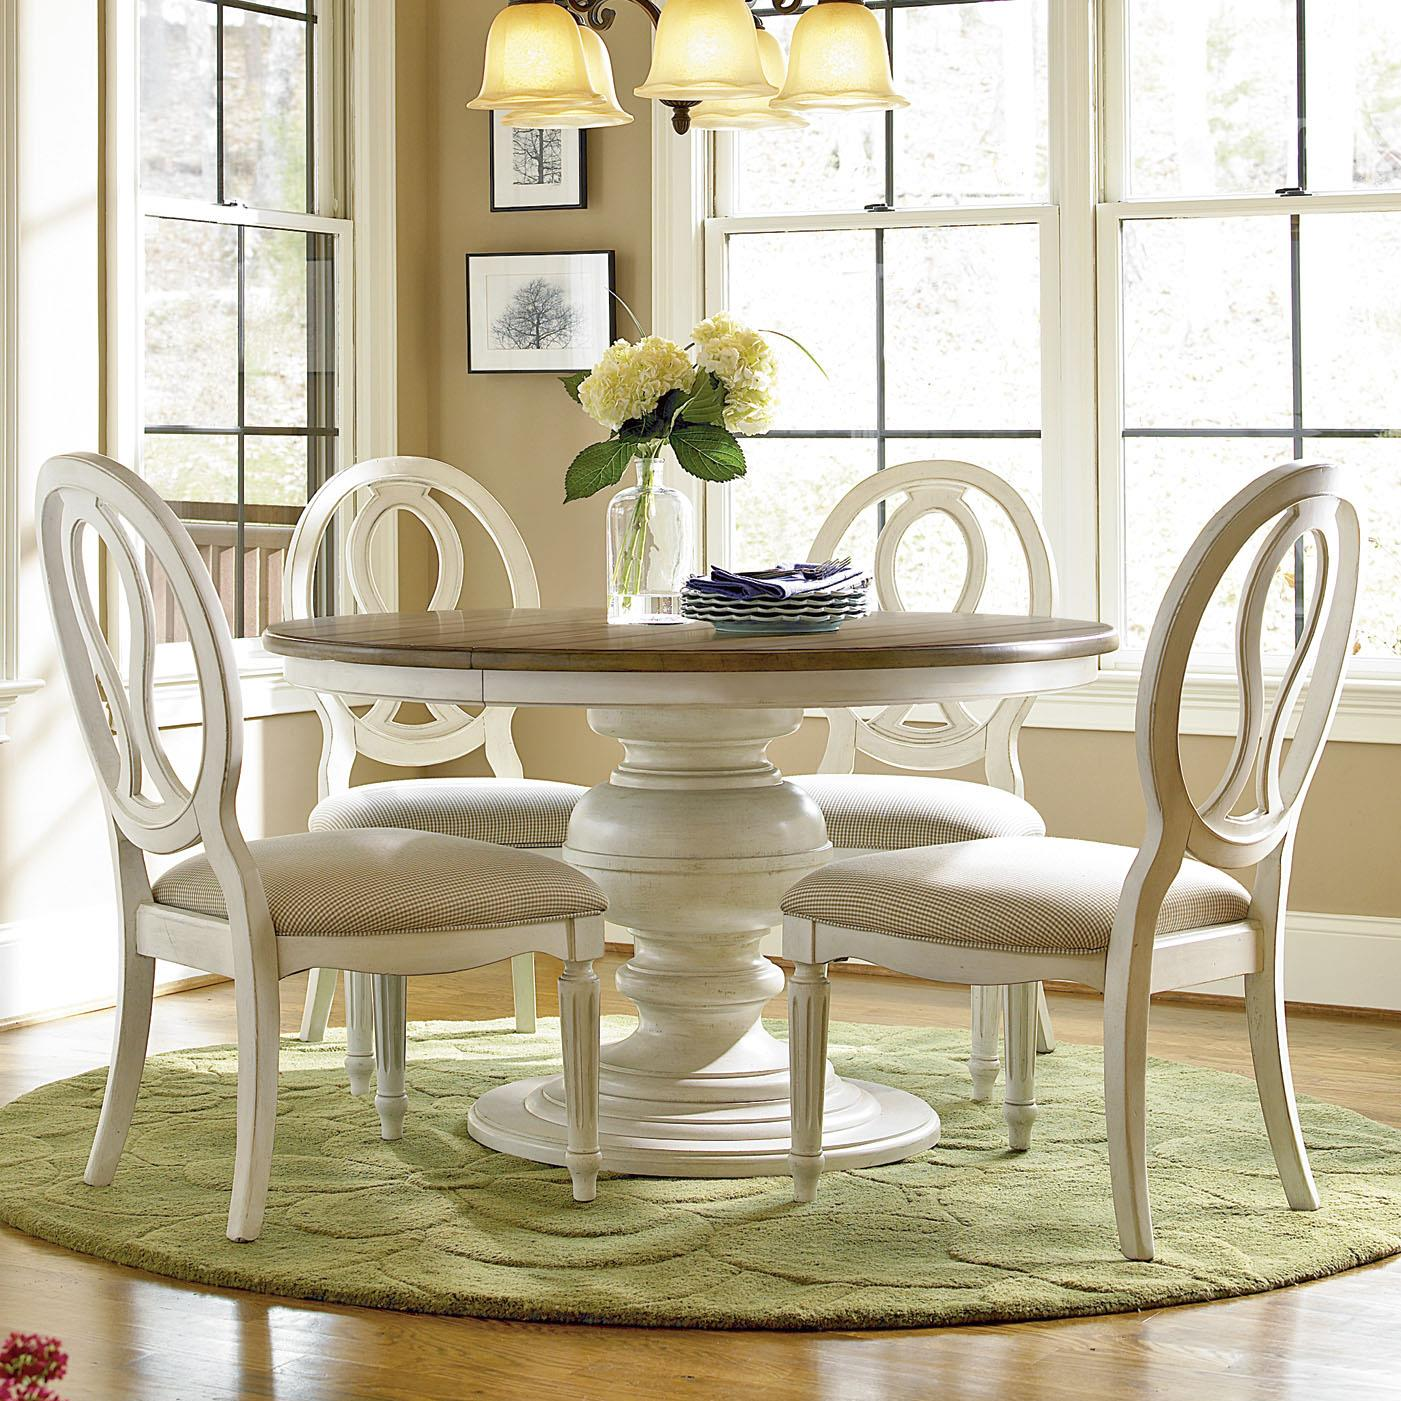 Summer Hill 5 Piece Dining Set by Universal at Furniture Barn